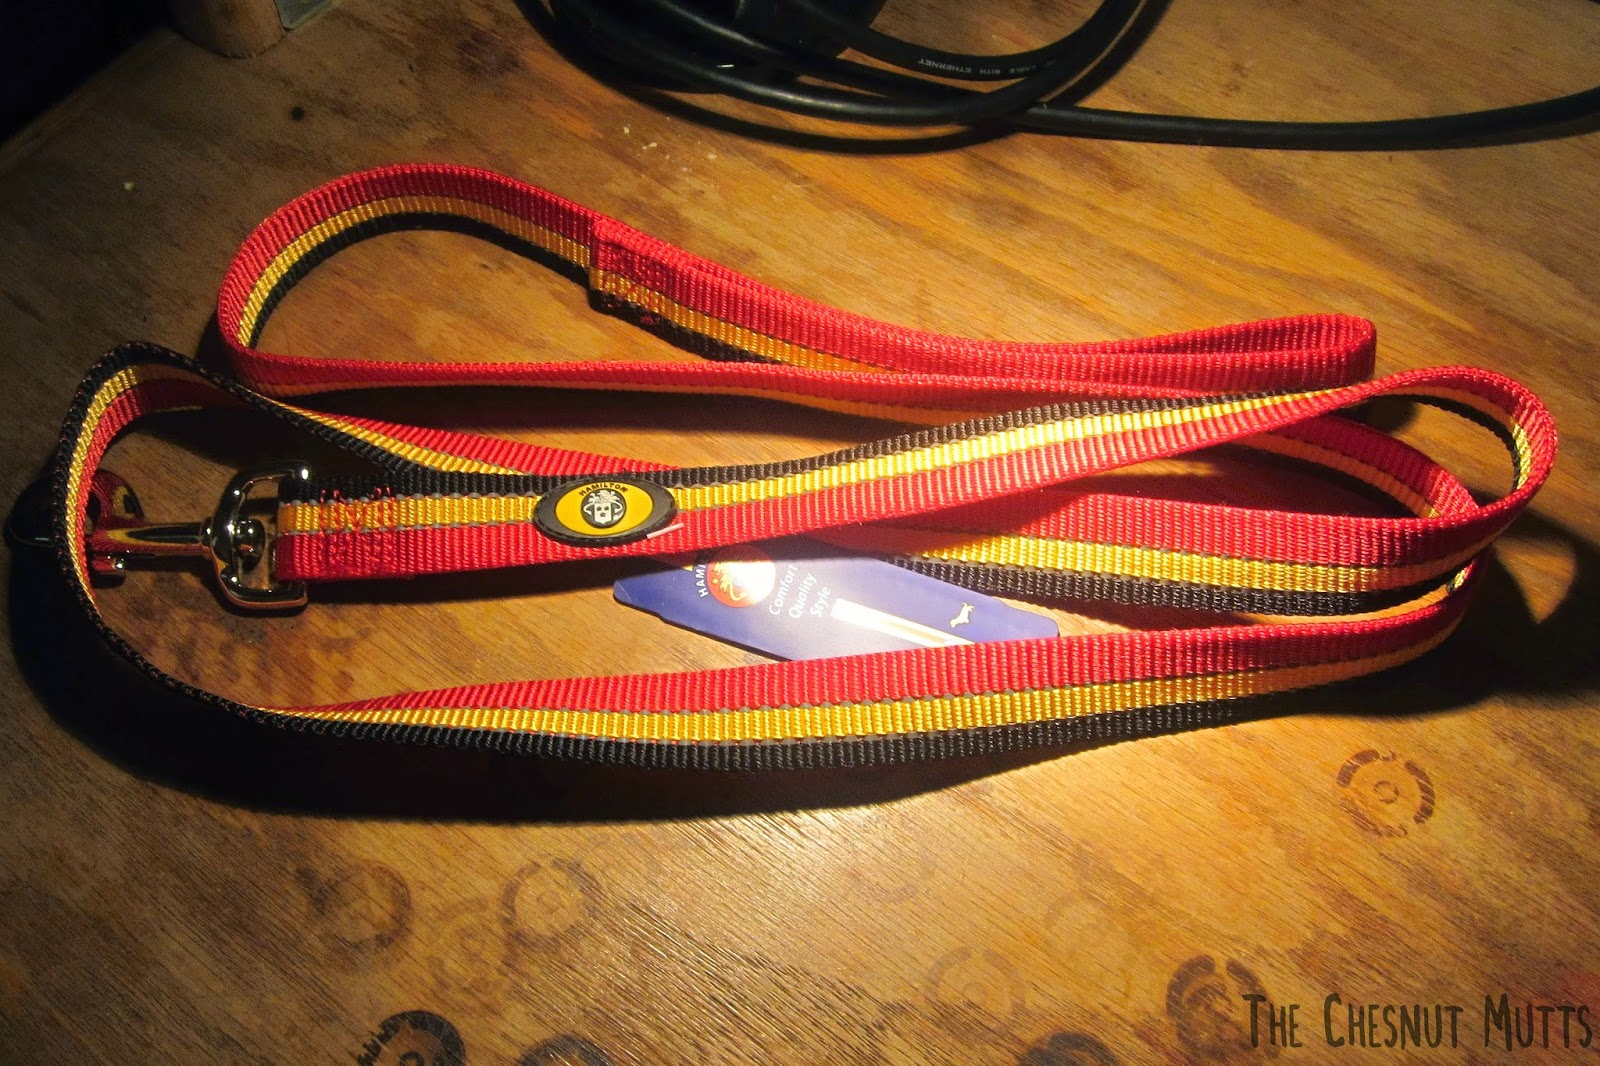 the hamilton reflective dog leash shown in regular light